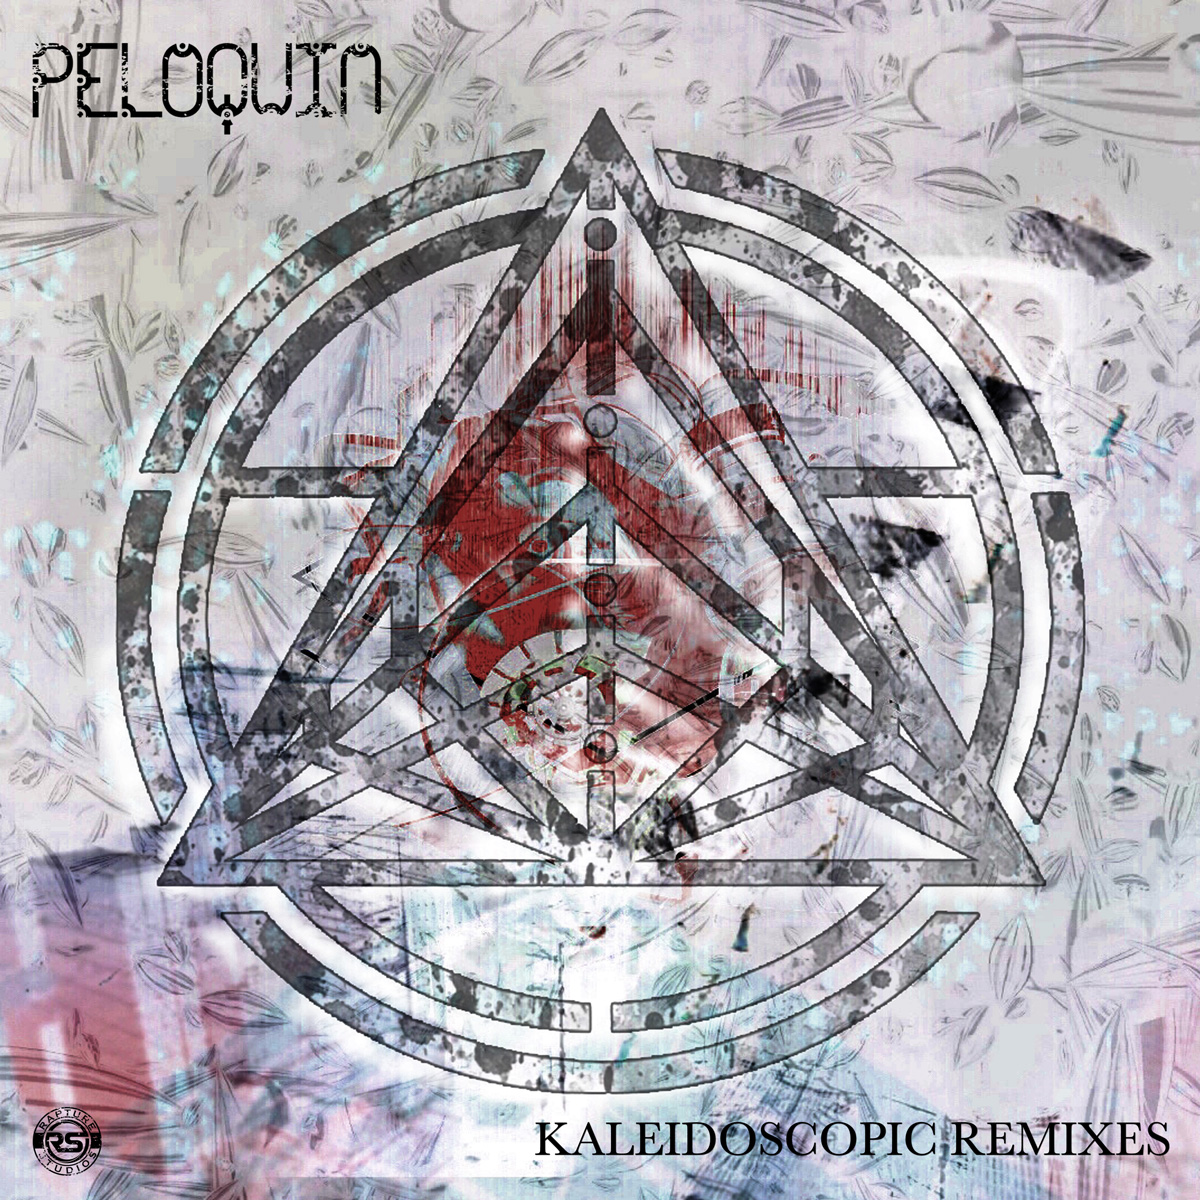 PELOQUIN - KALEIDOSCOPIC REMIXES